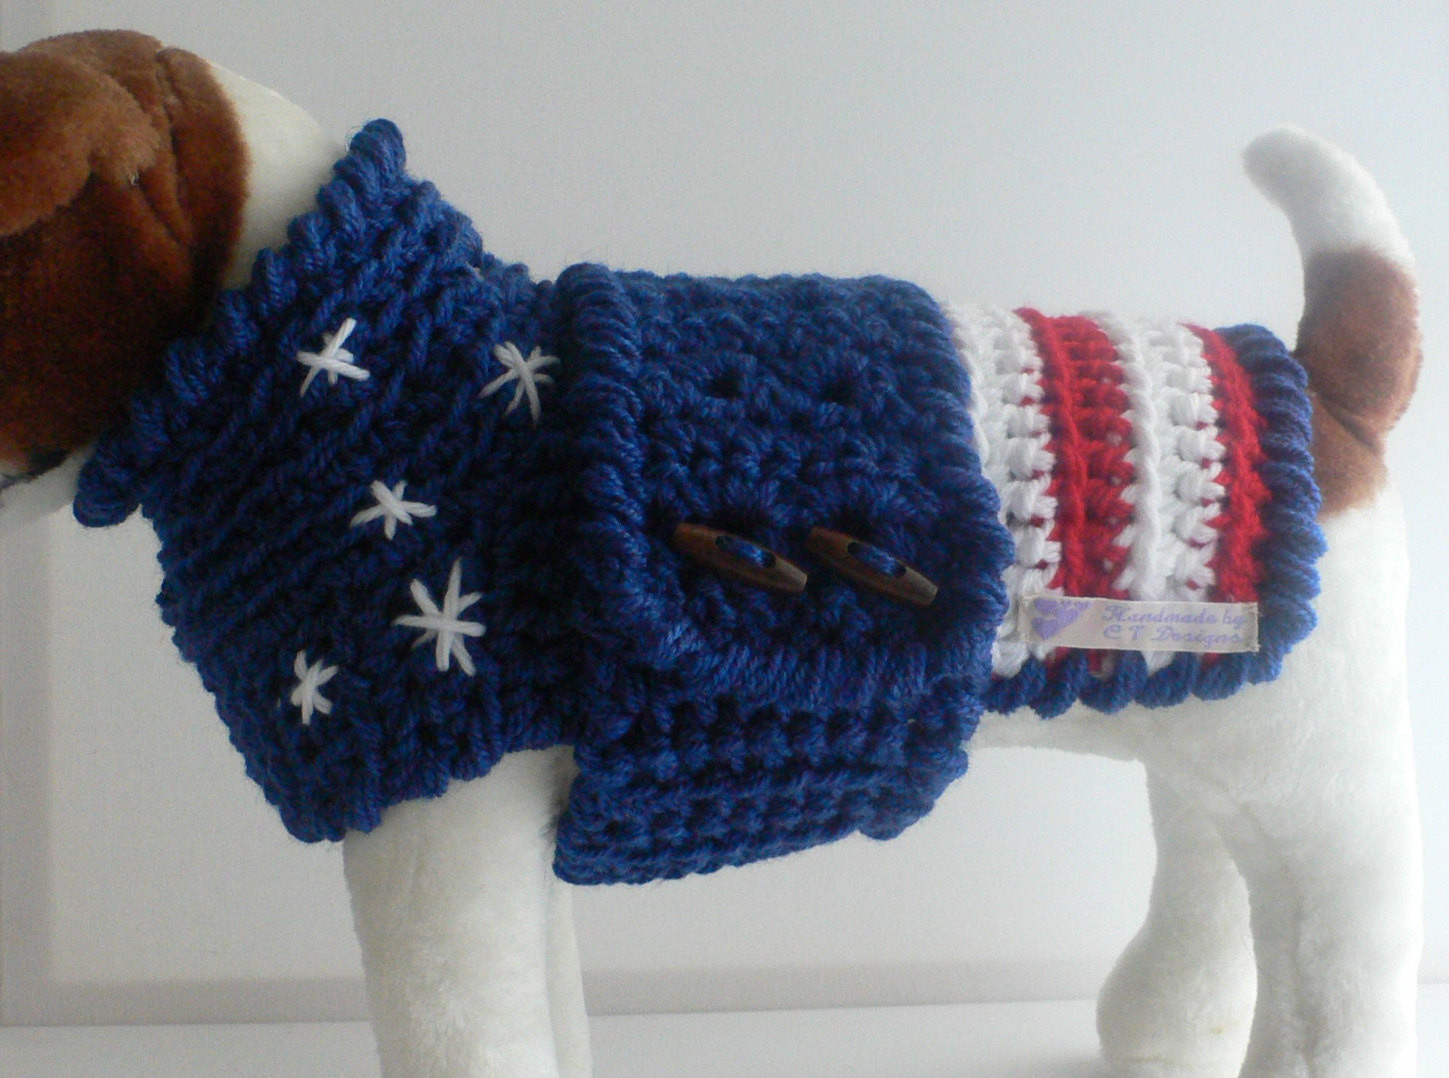 Crochet Dog Best Of Crochet Dog Sweater Medium Dog Sweater Patriotic Dog Of Perfect 50 Images Crochet Dog